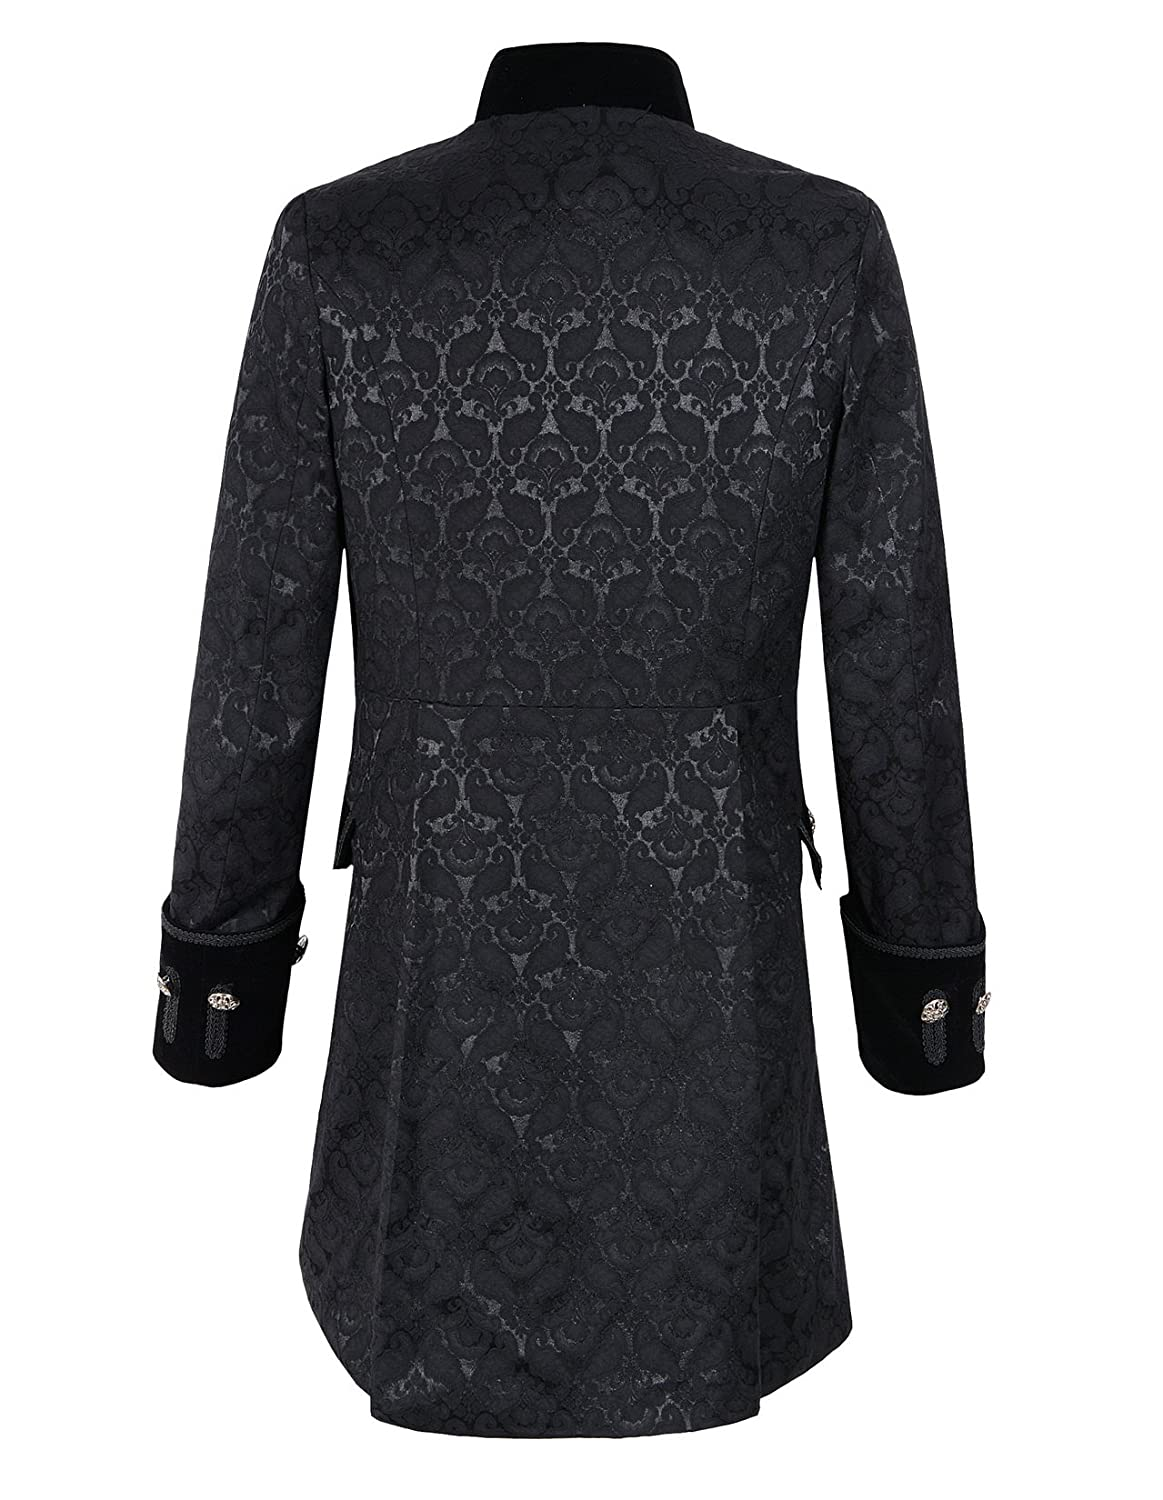 DarcChic Mens Velvet Goth Steampunk Victorian Frock Coat At Amazon Clothing Store